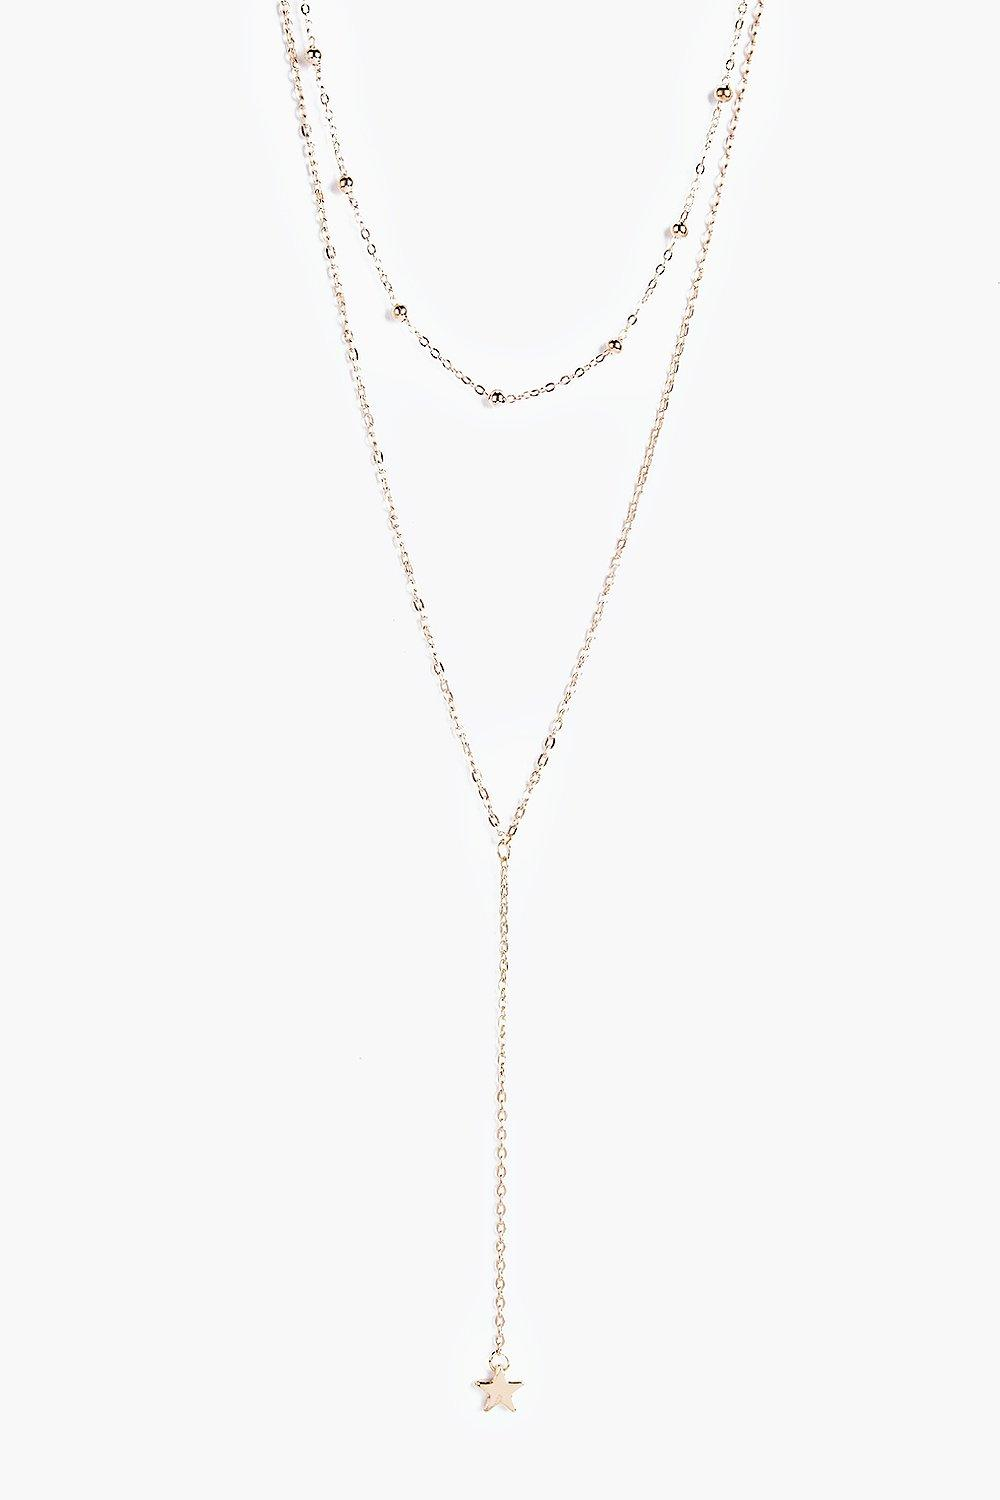 Plunge Layered Necklace - gold